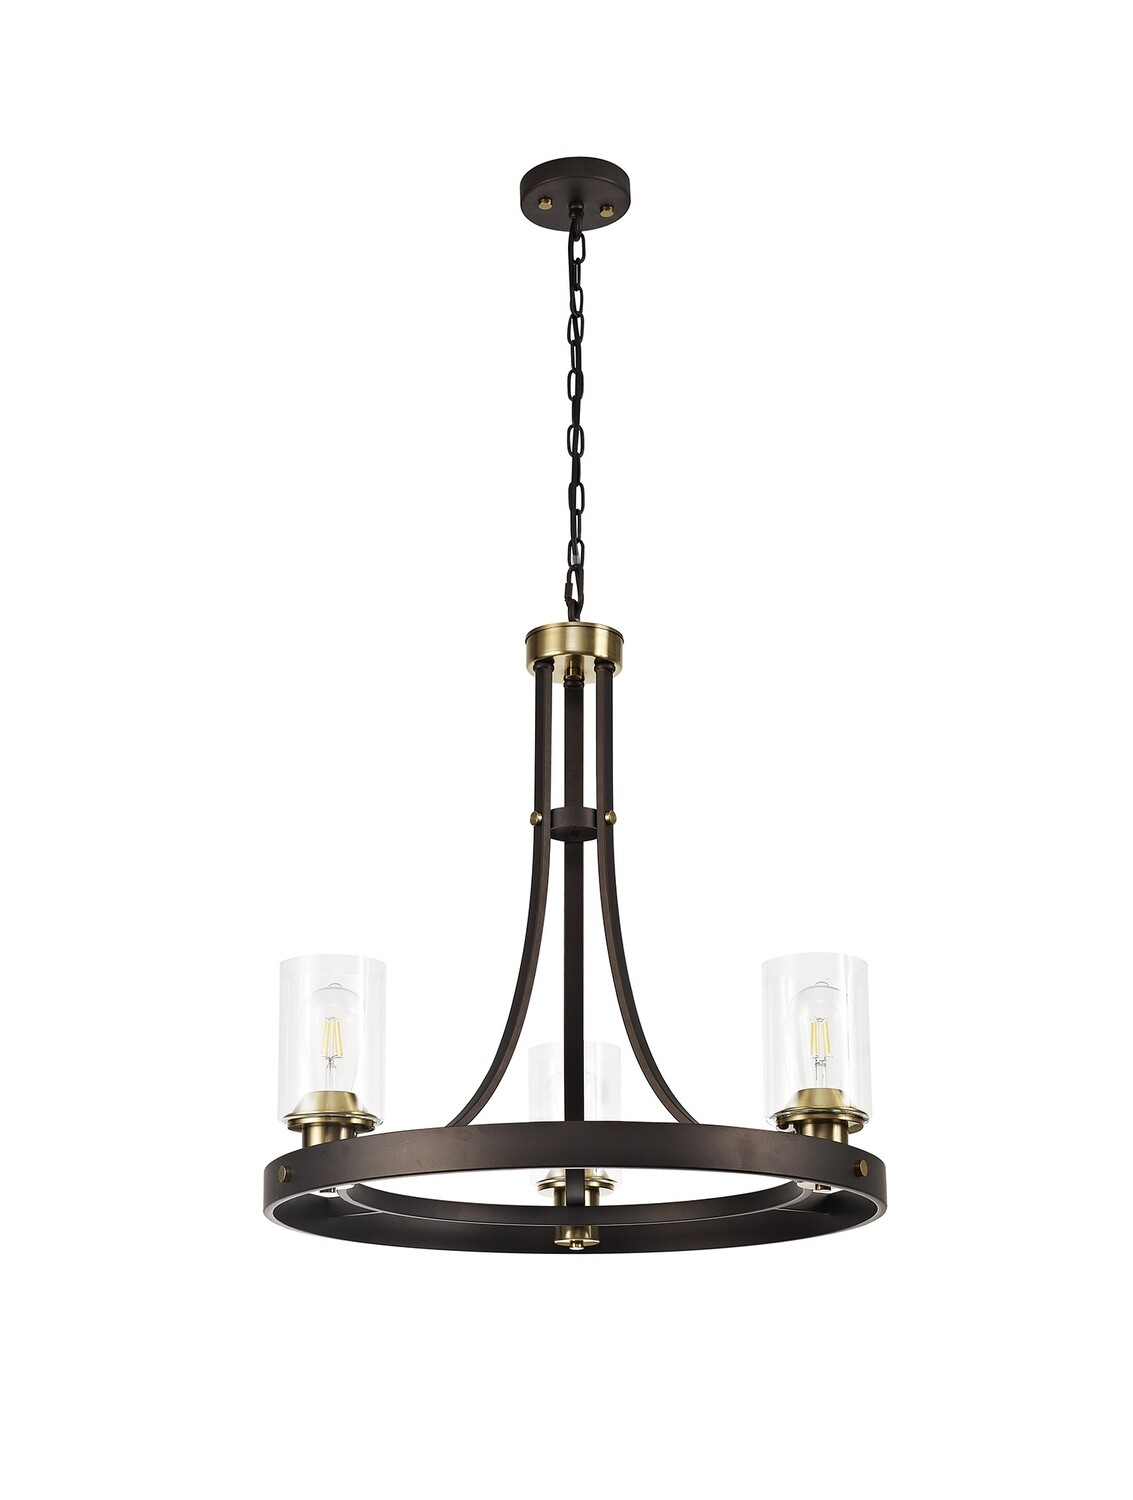 Marini Pendant 3 Light E27, Brown Oxide/Bronze With Clear Glass Shades